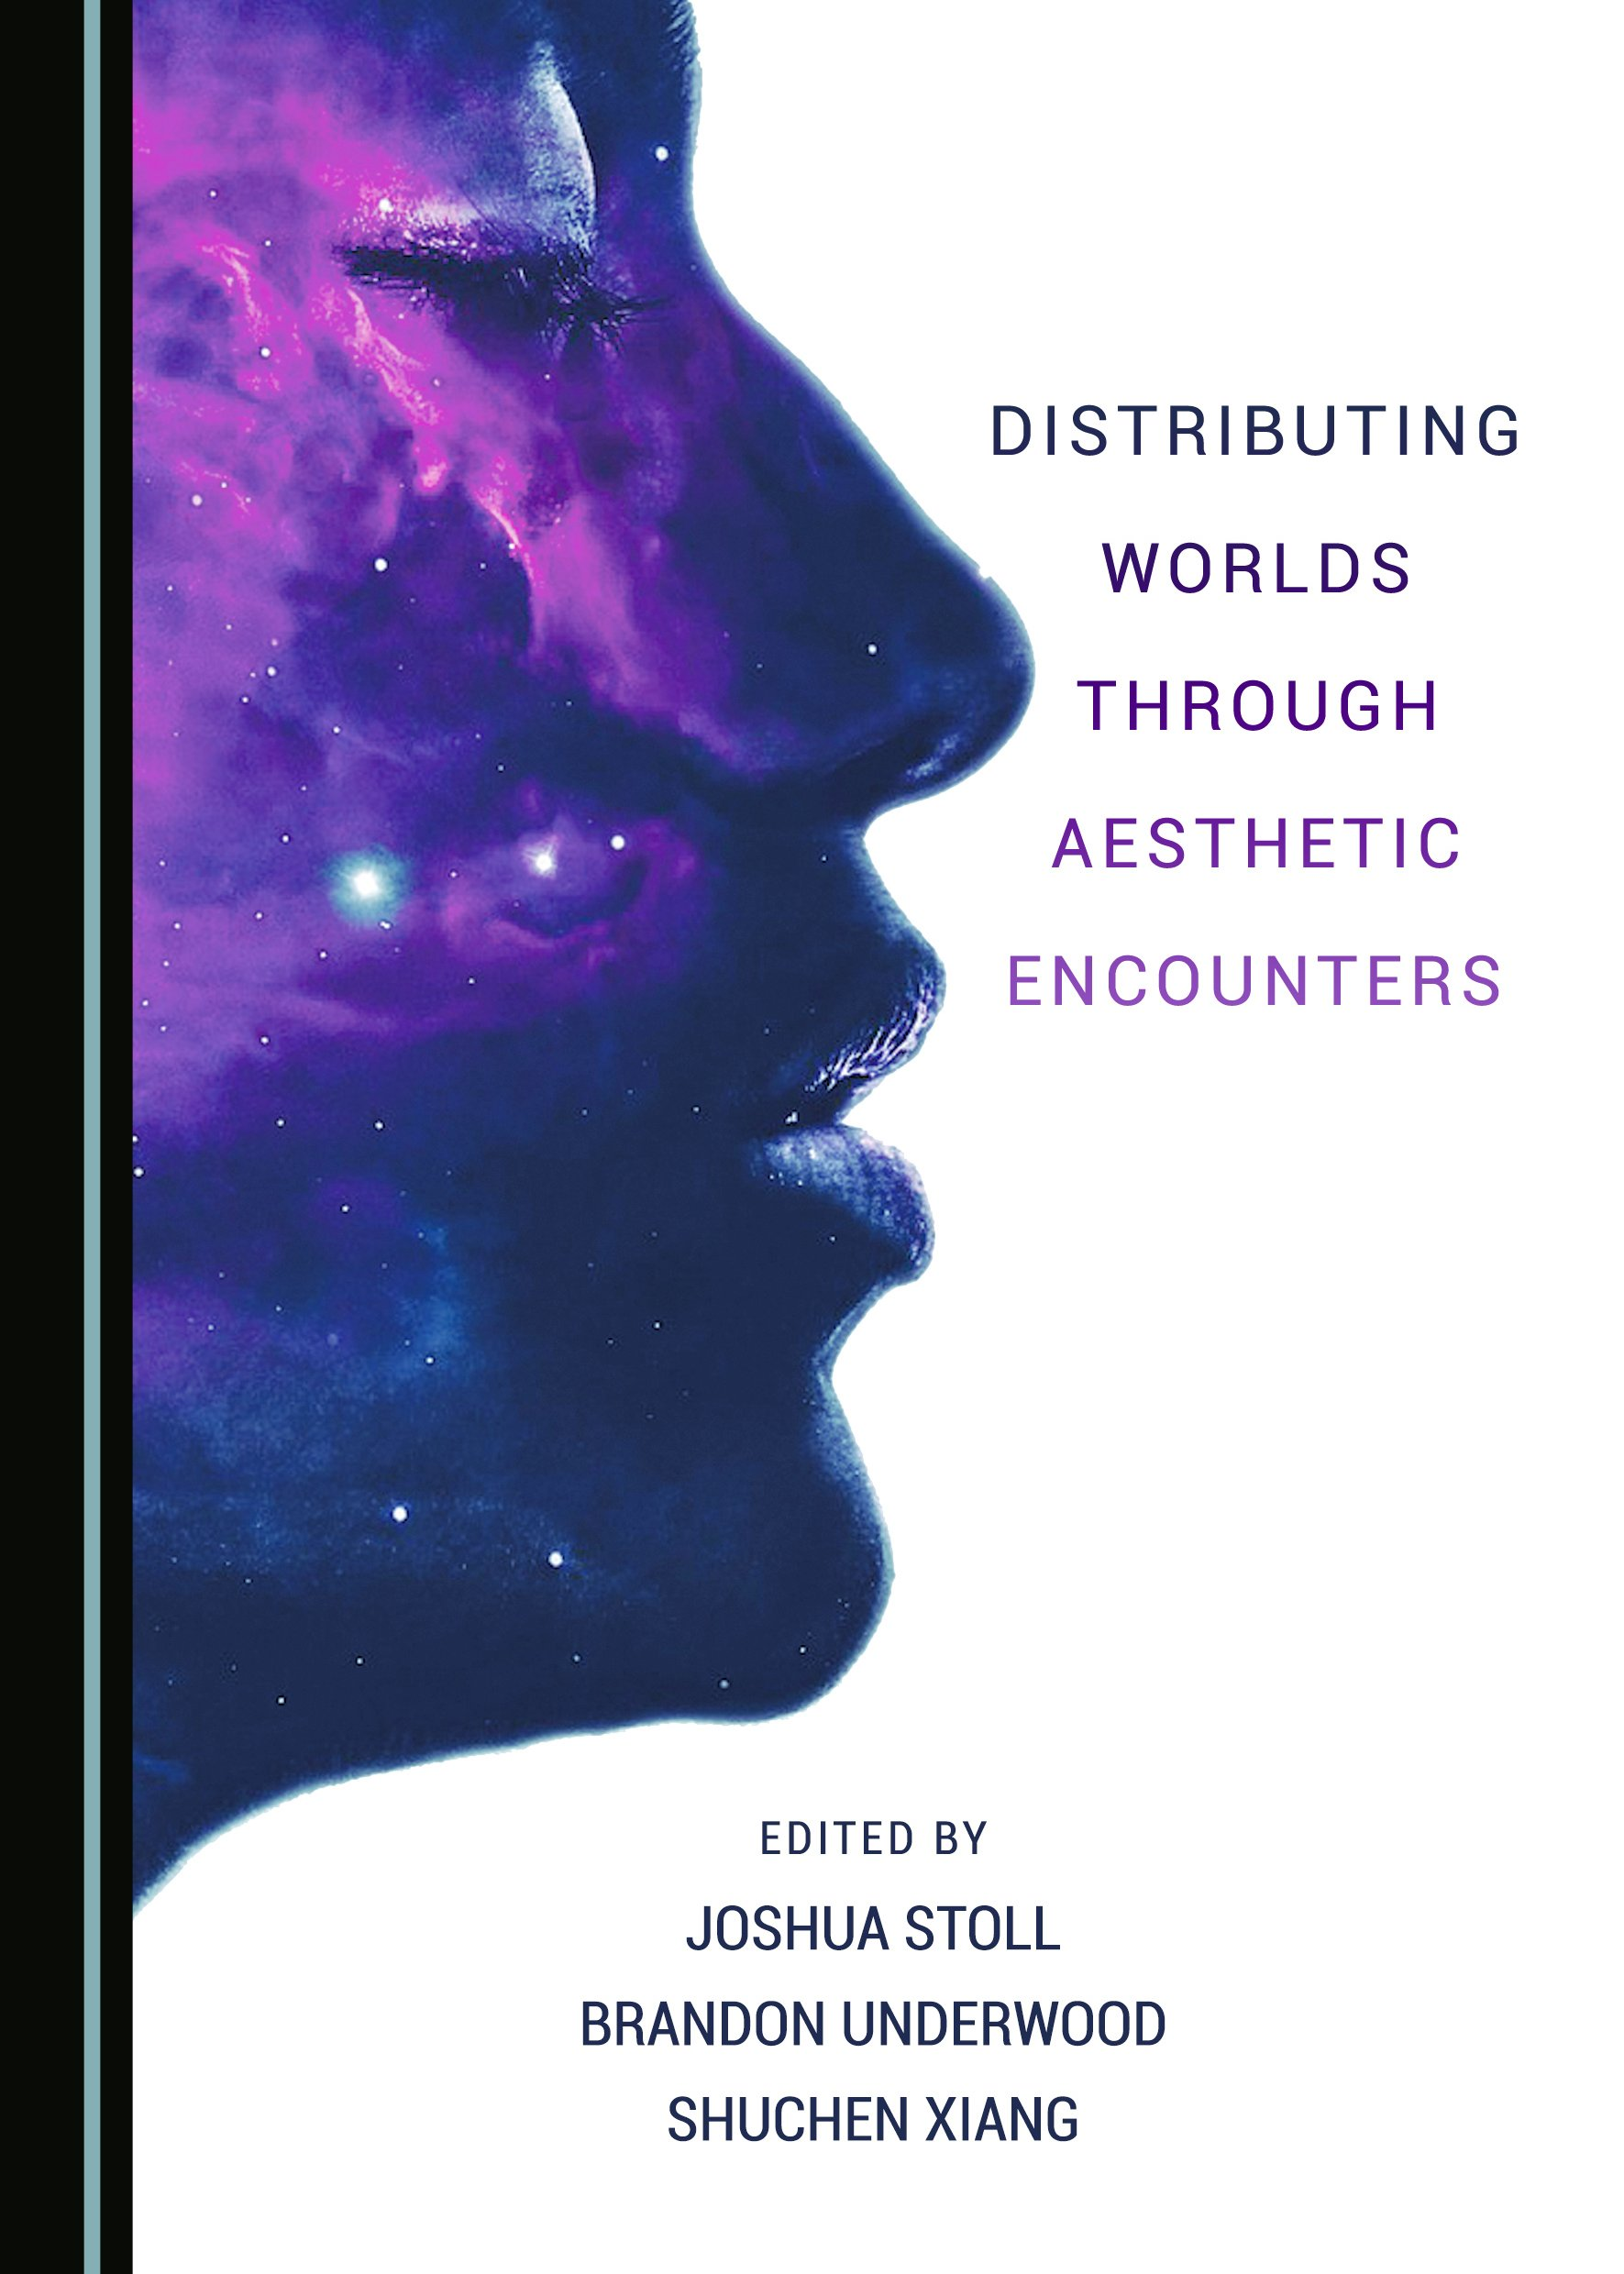 Distributing Worlds through Aesthetic Encounters